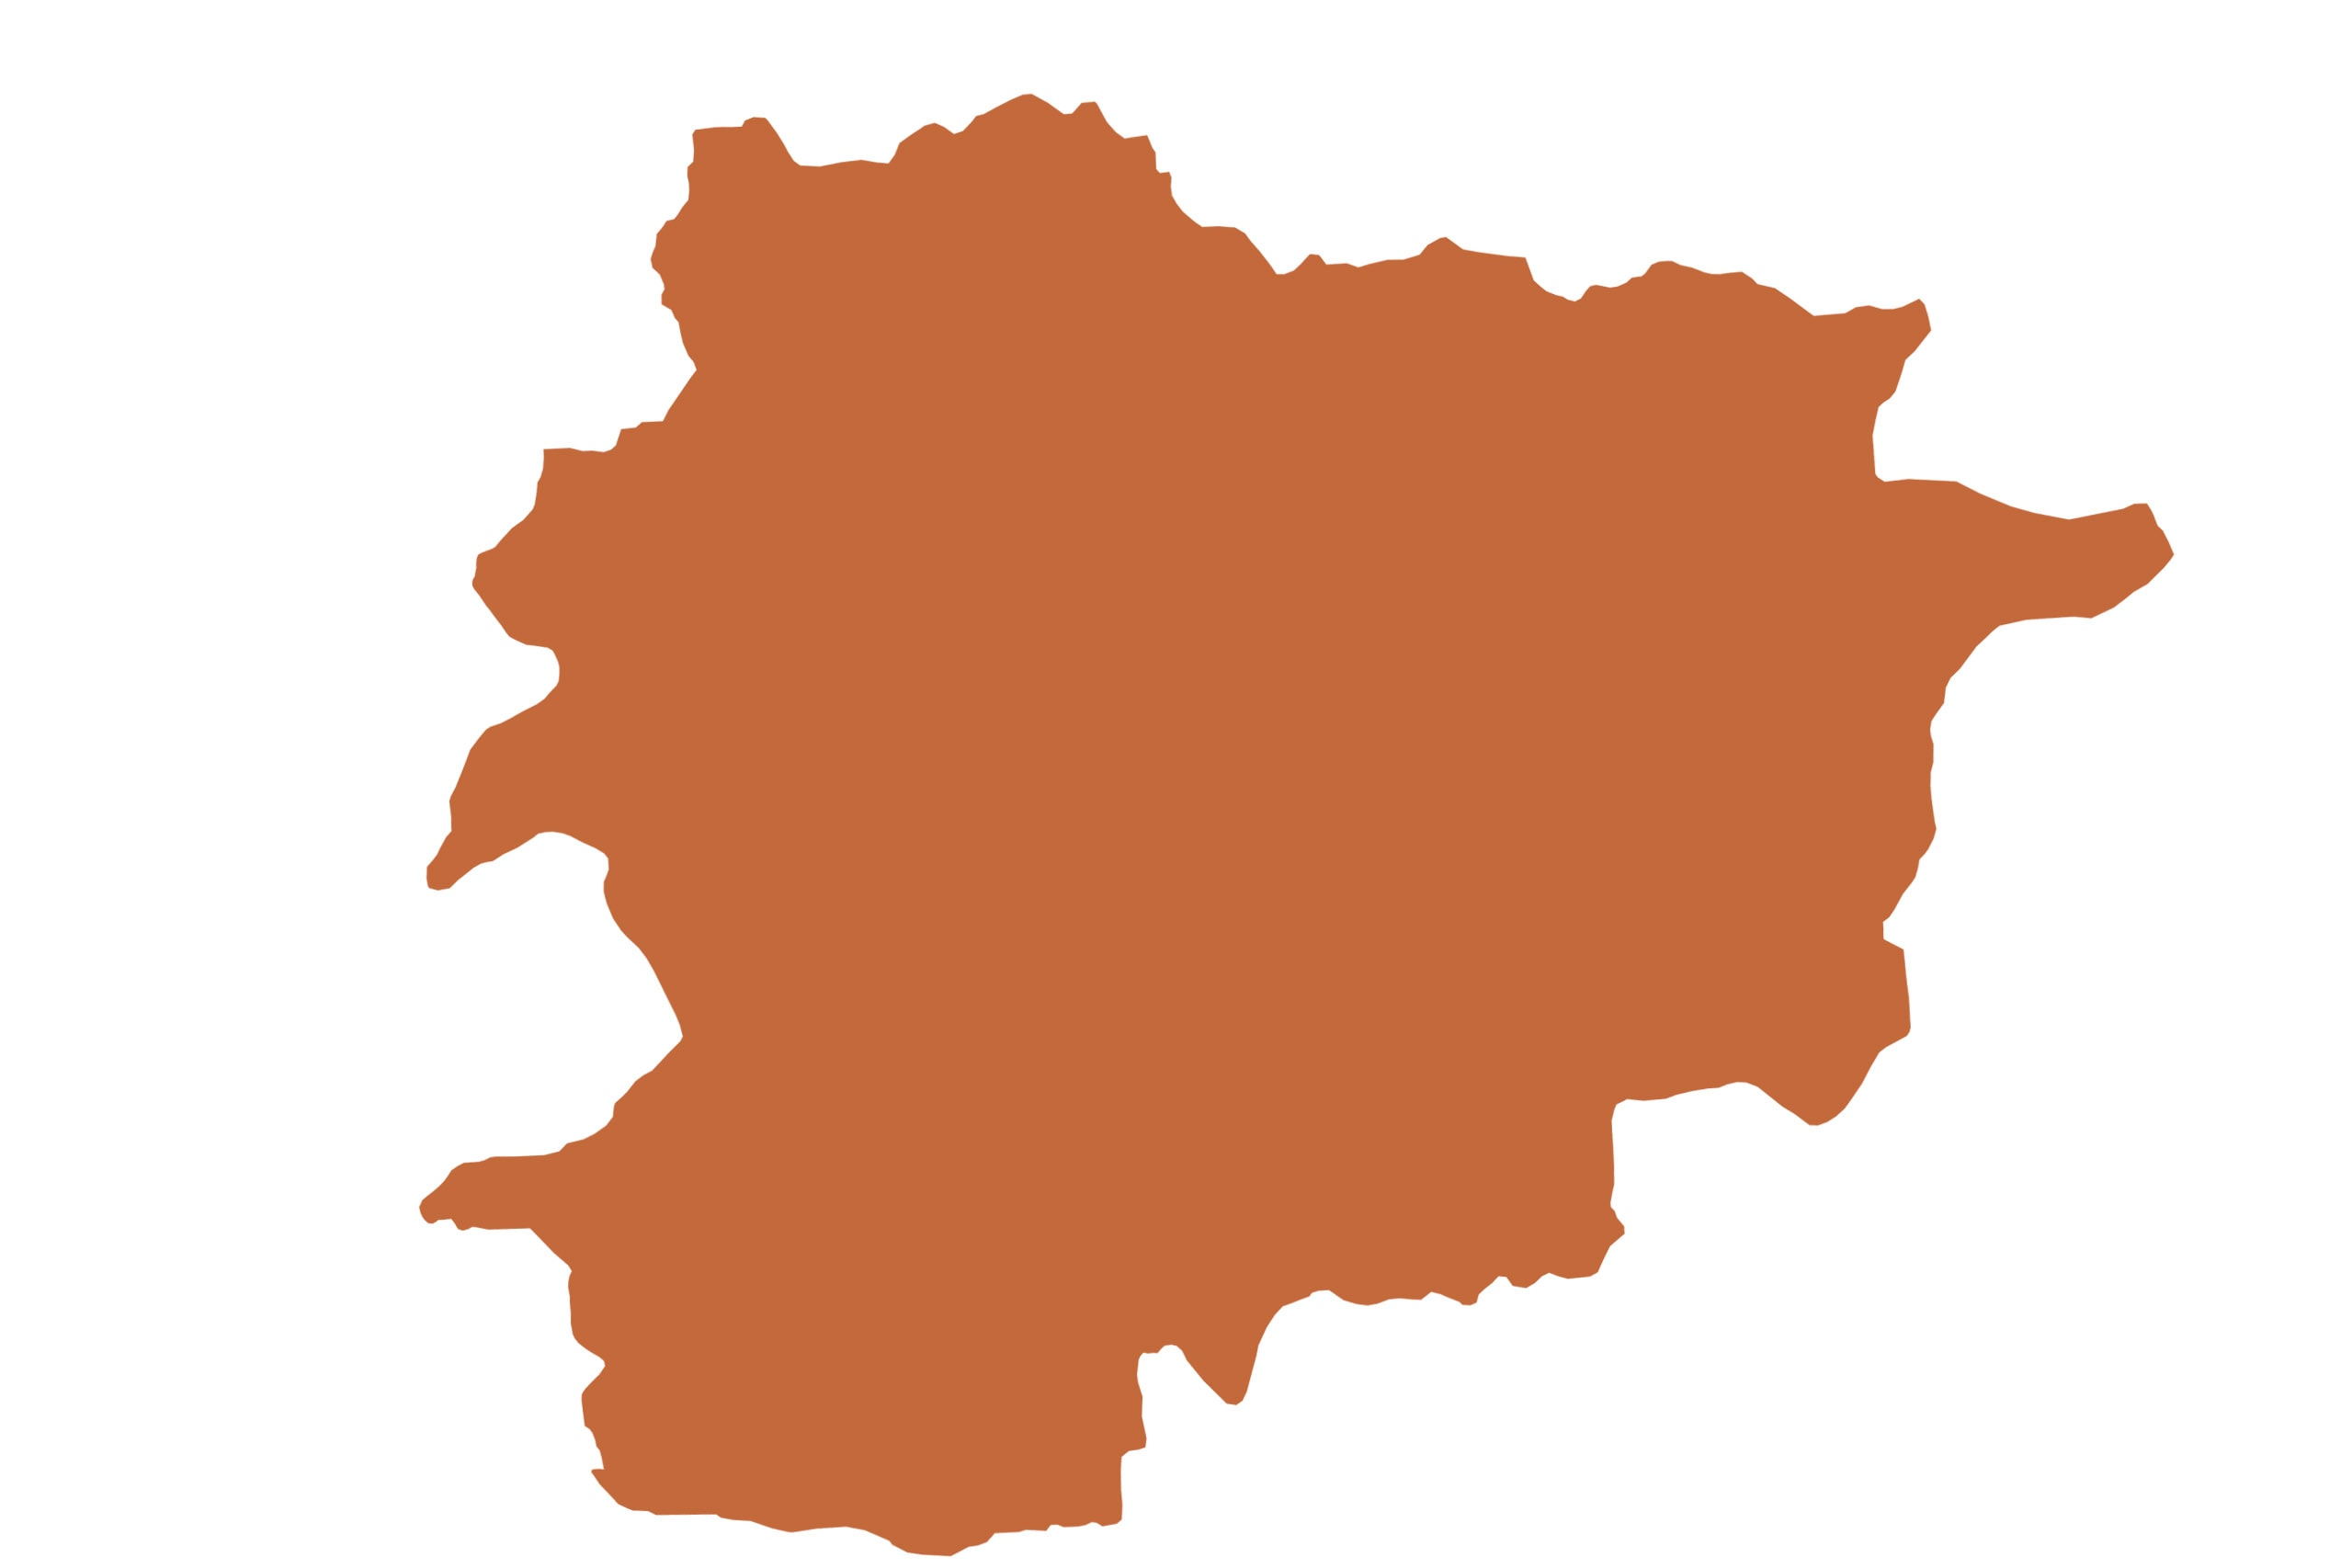 Andorra map in orange from list of missing countries for 1 Earth City Portrait Photography Project aka NYChildren by Danny Goldfield.